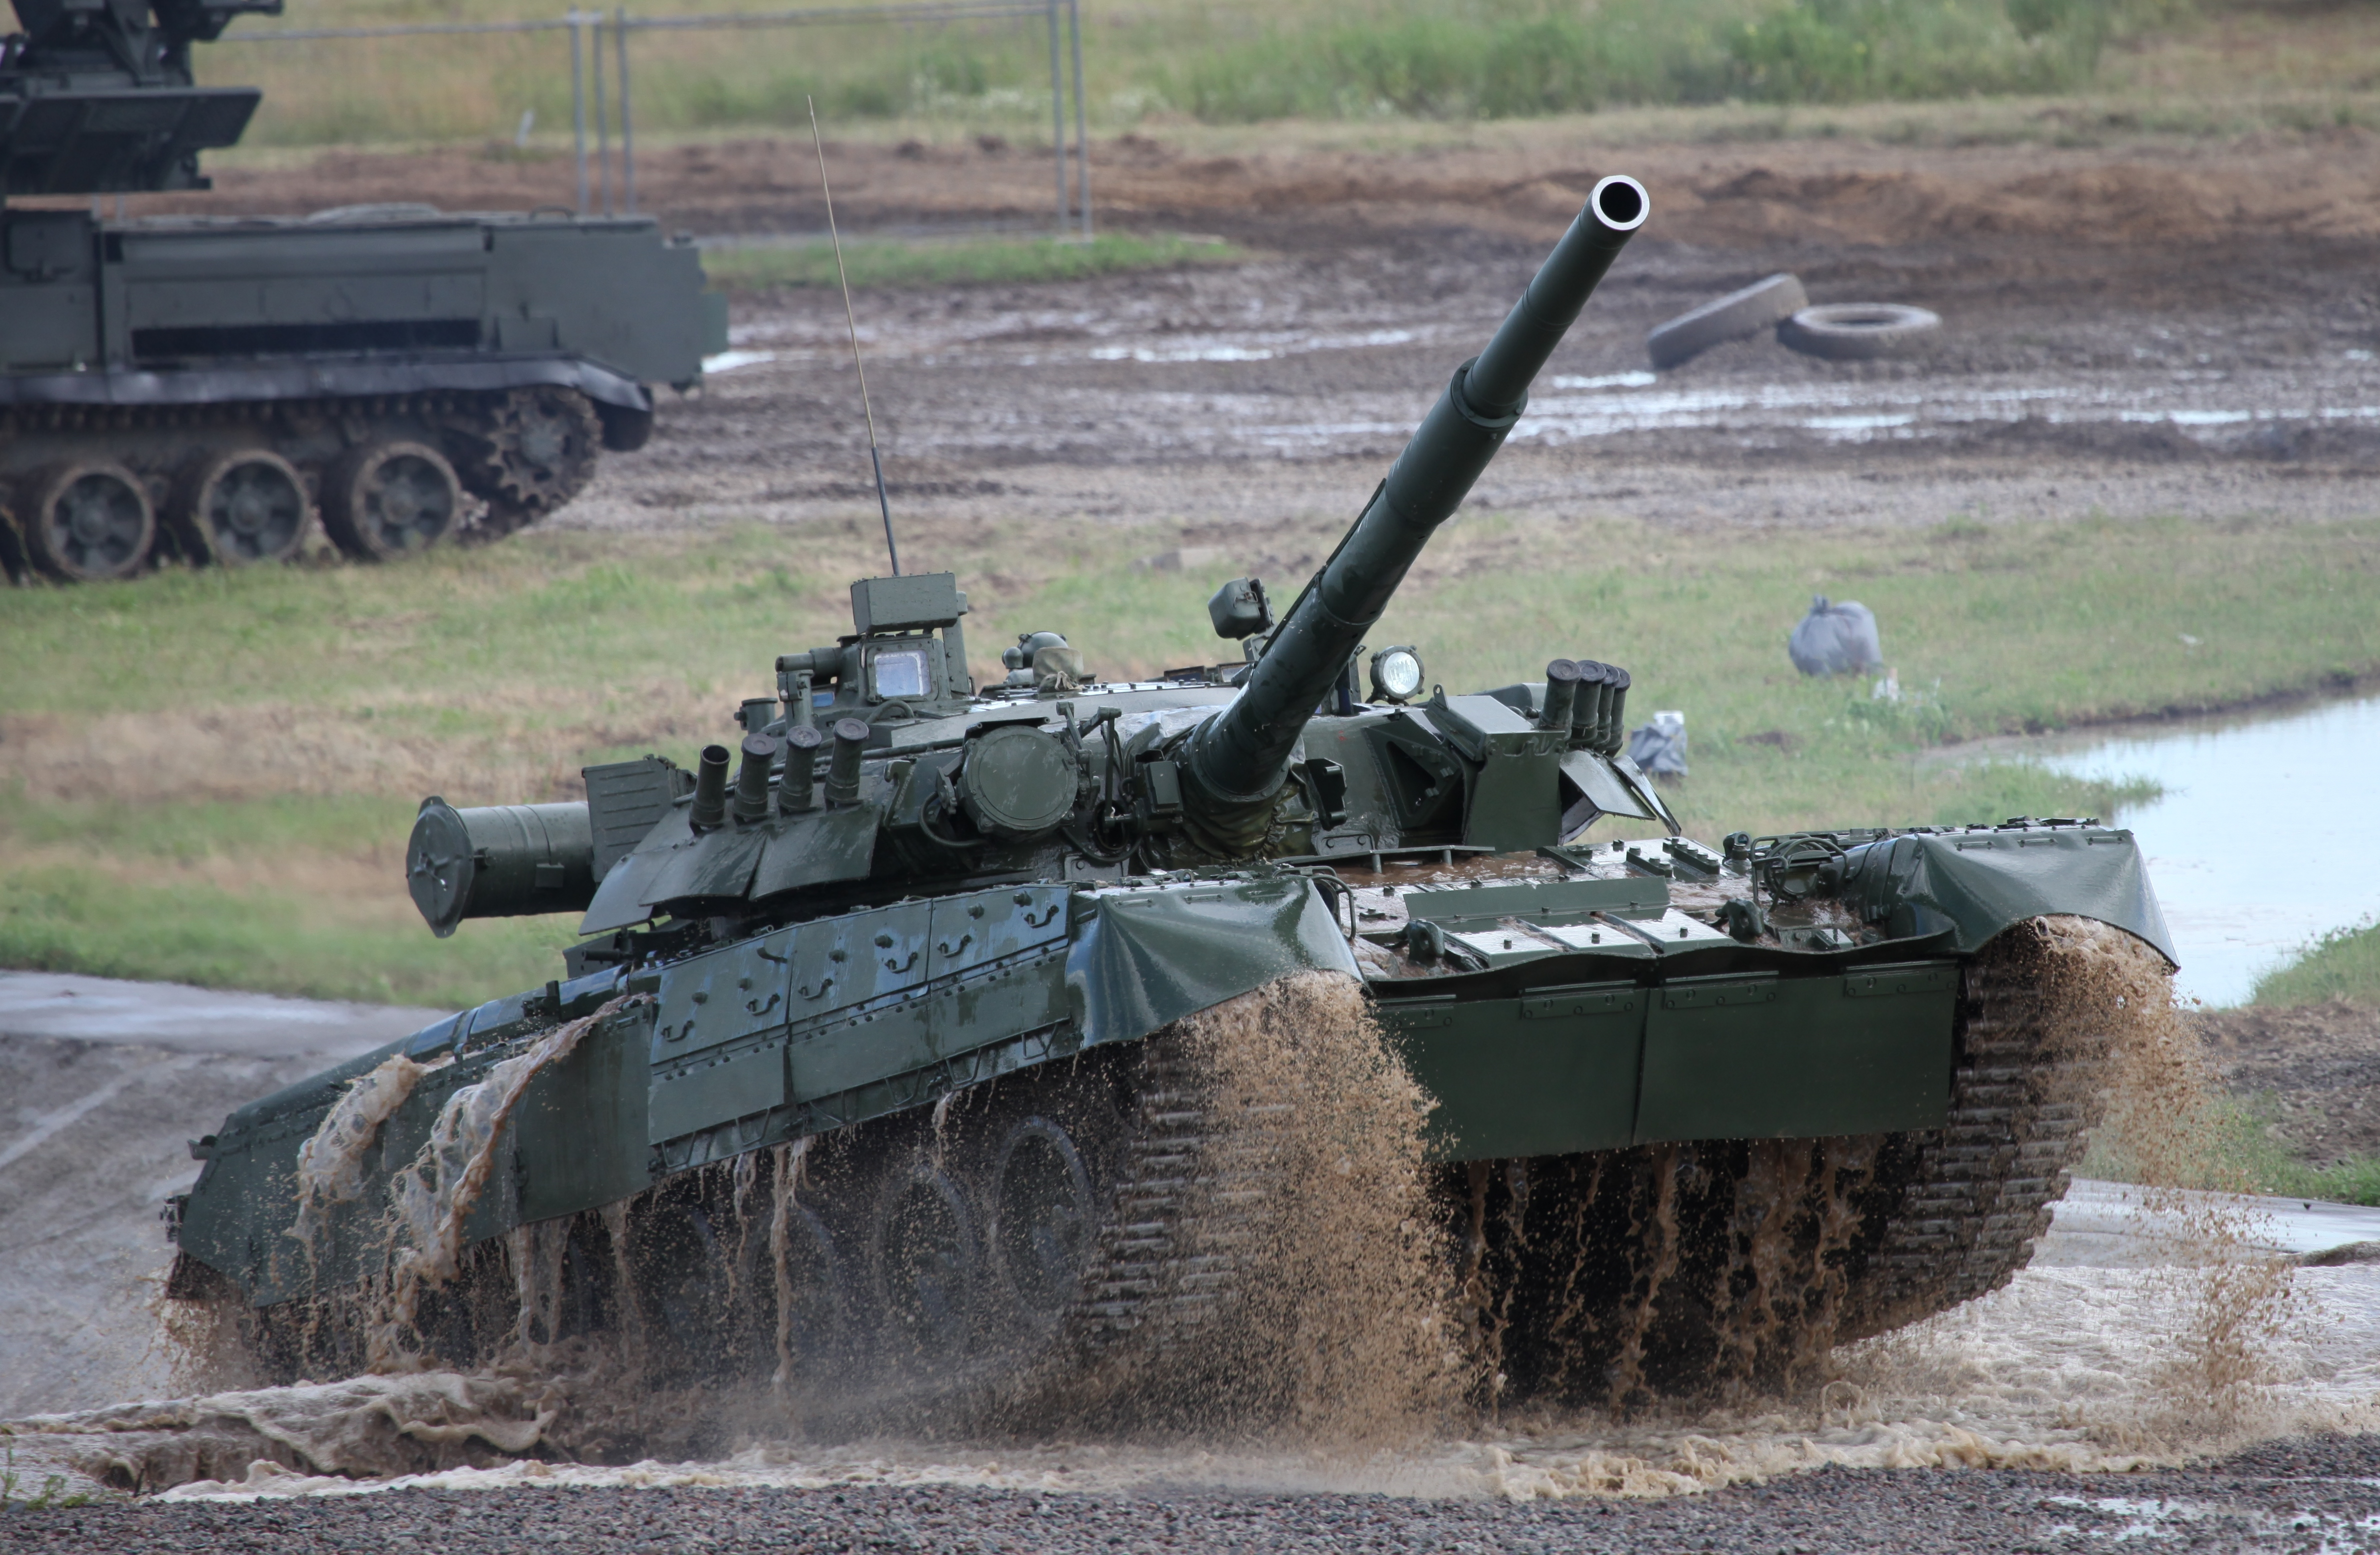 46bc5569b8f48 What is the prettiest tank in your opinion   TankPorn